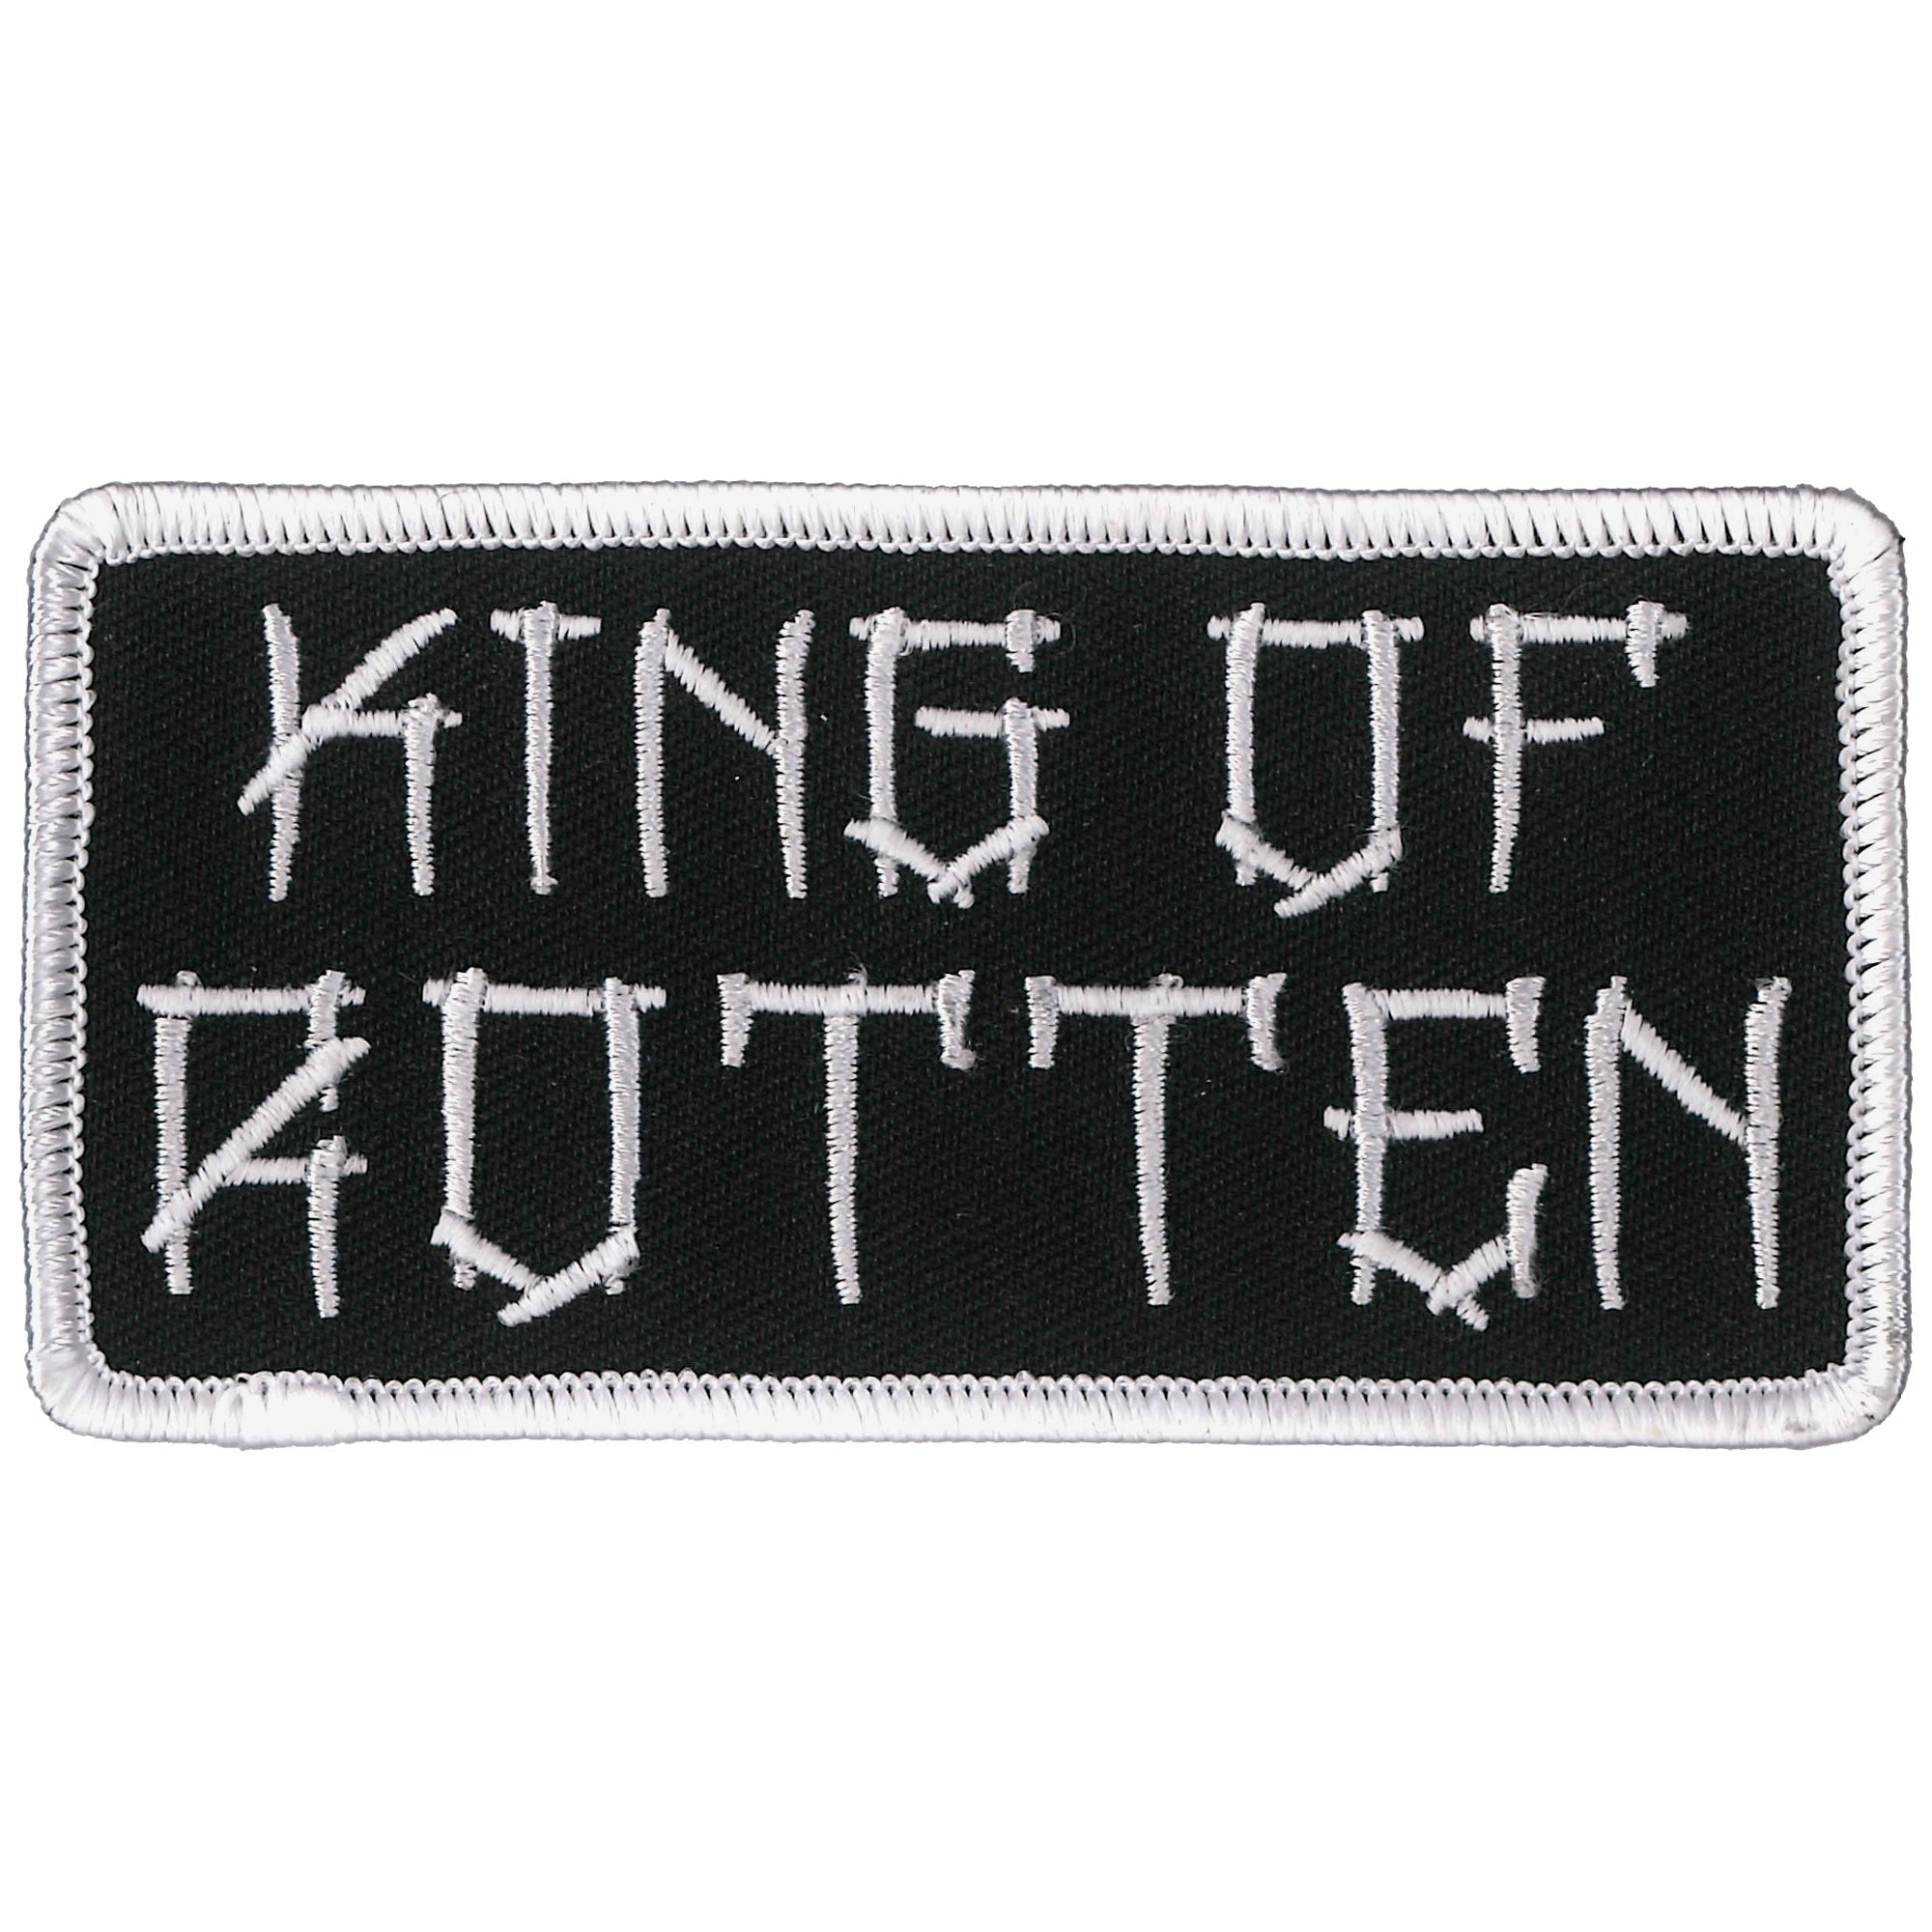 Hot Leathers King of Rotten Patch